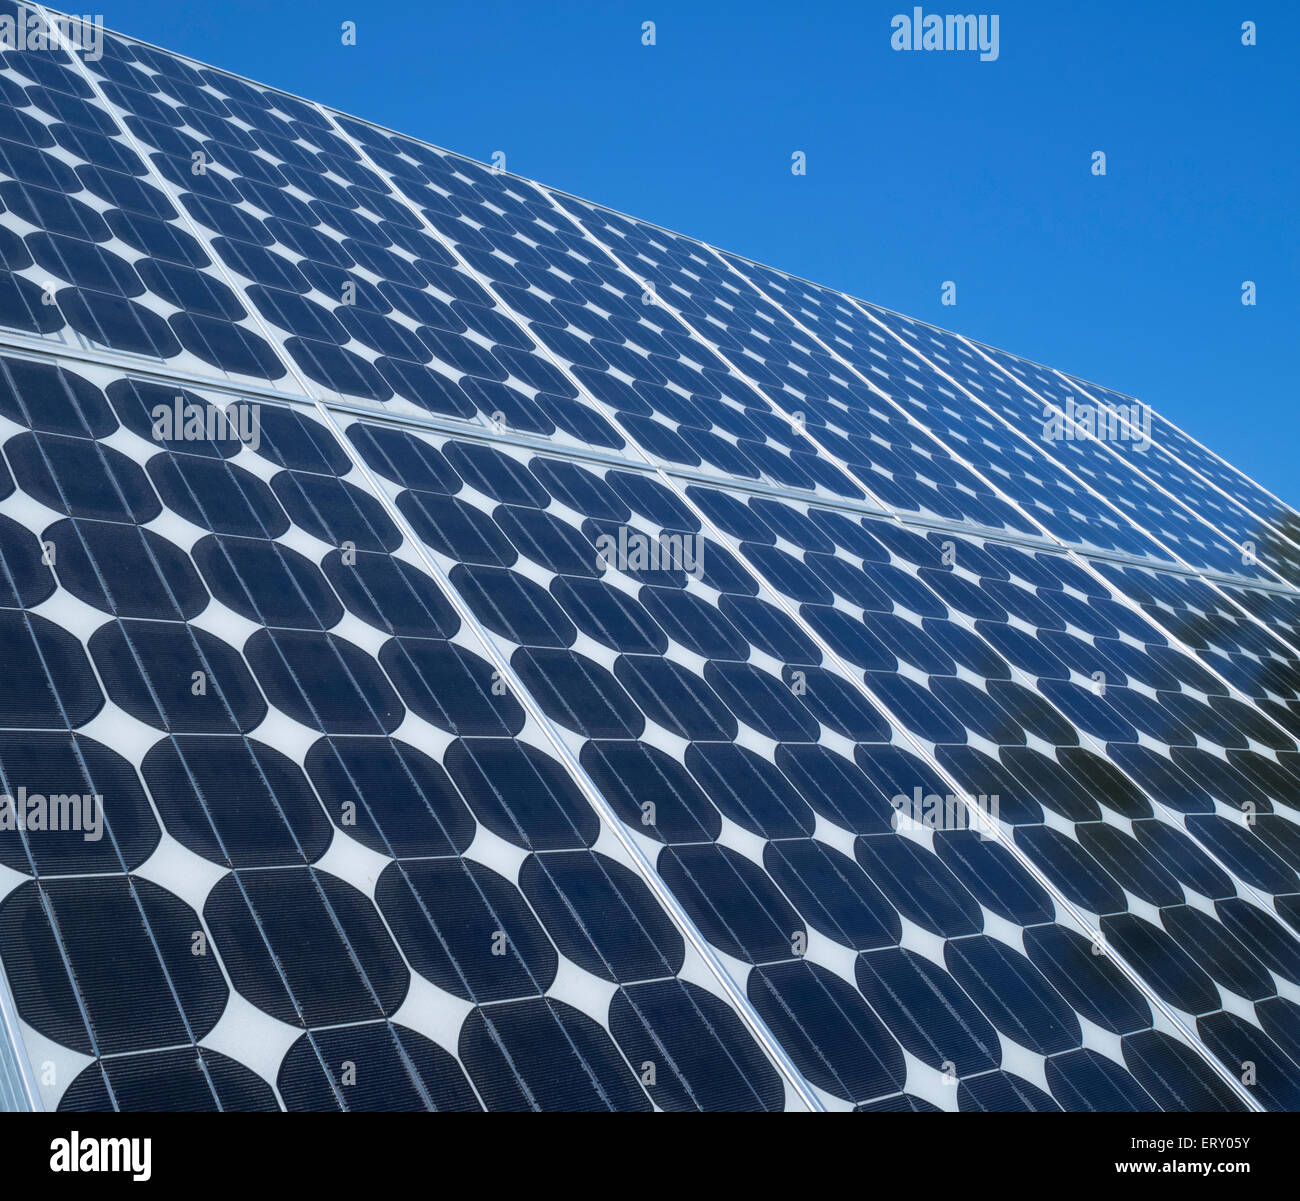 solar-panel-photovoltaic-cells-array-close-up-blue-sky-copy-space-ERY05Y.jpg